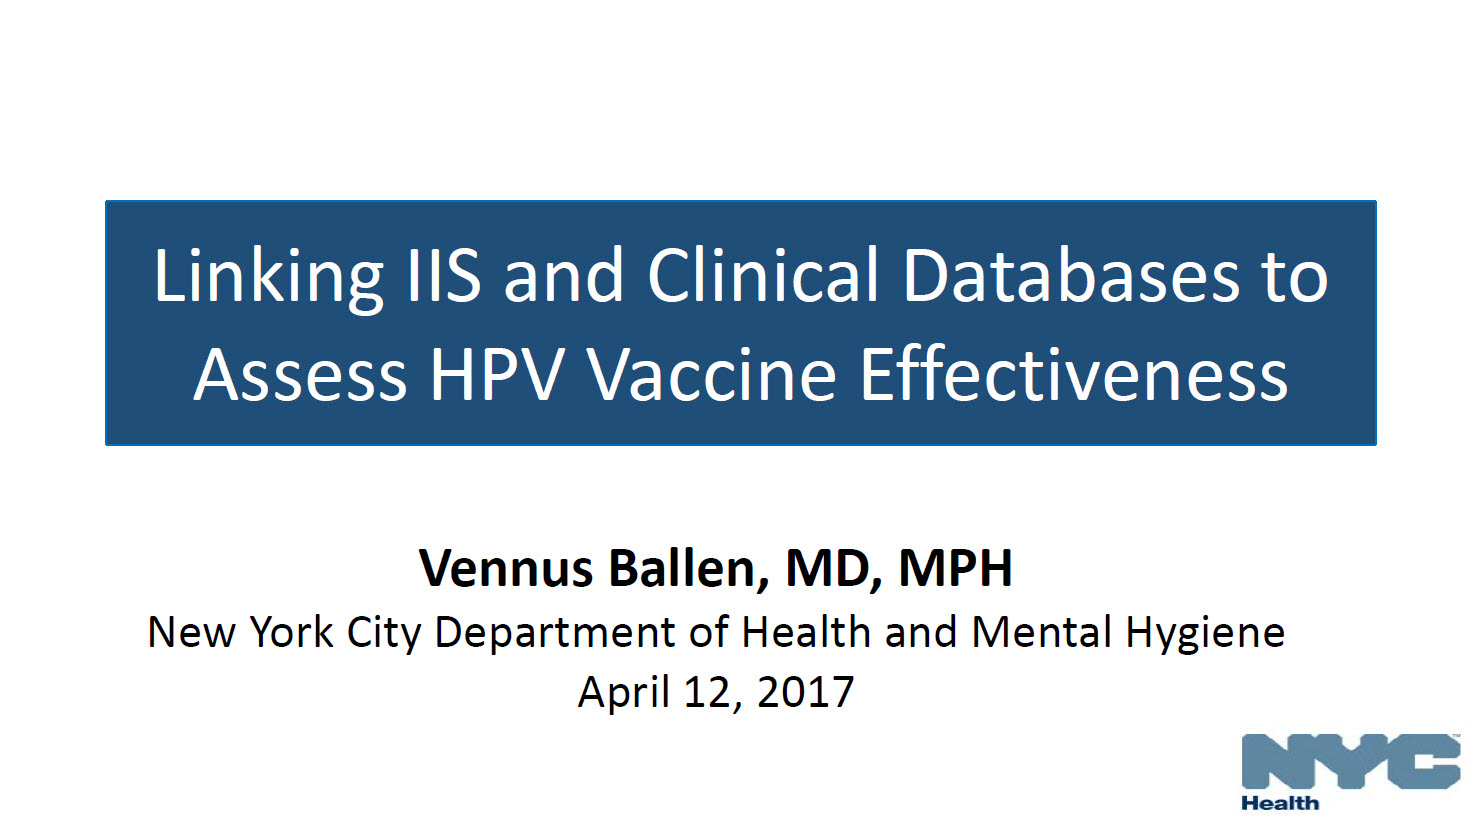 Linking IIS and Clinical Databases to Assess HPV Vaccine Effectiveness